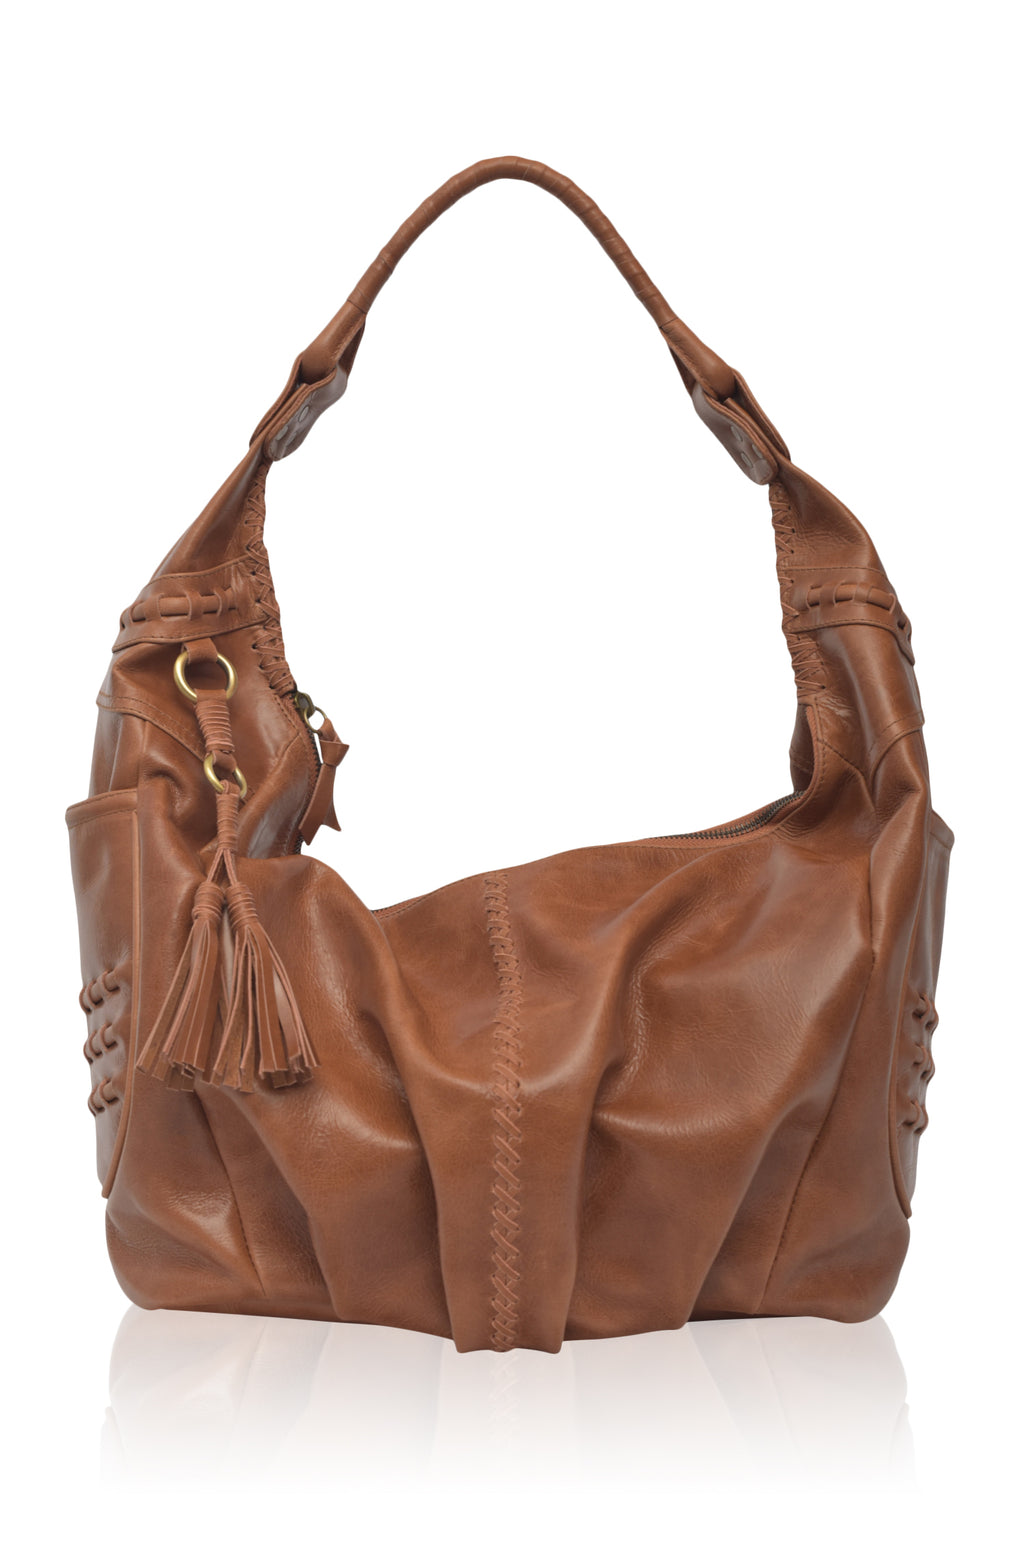 Monte Carlo Leather Hobo Bag